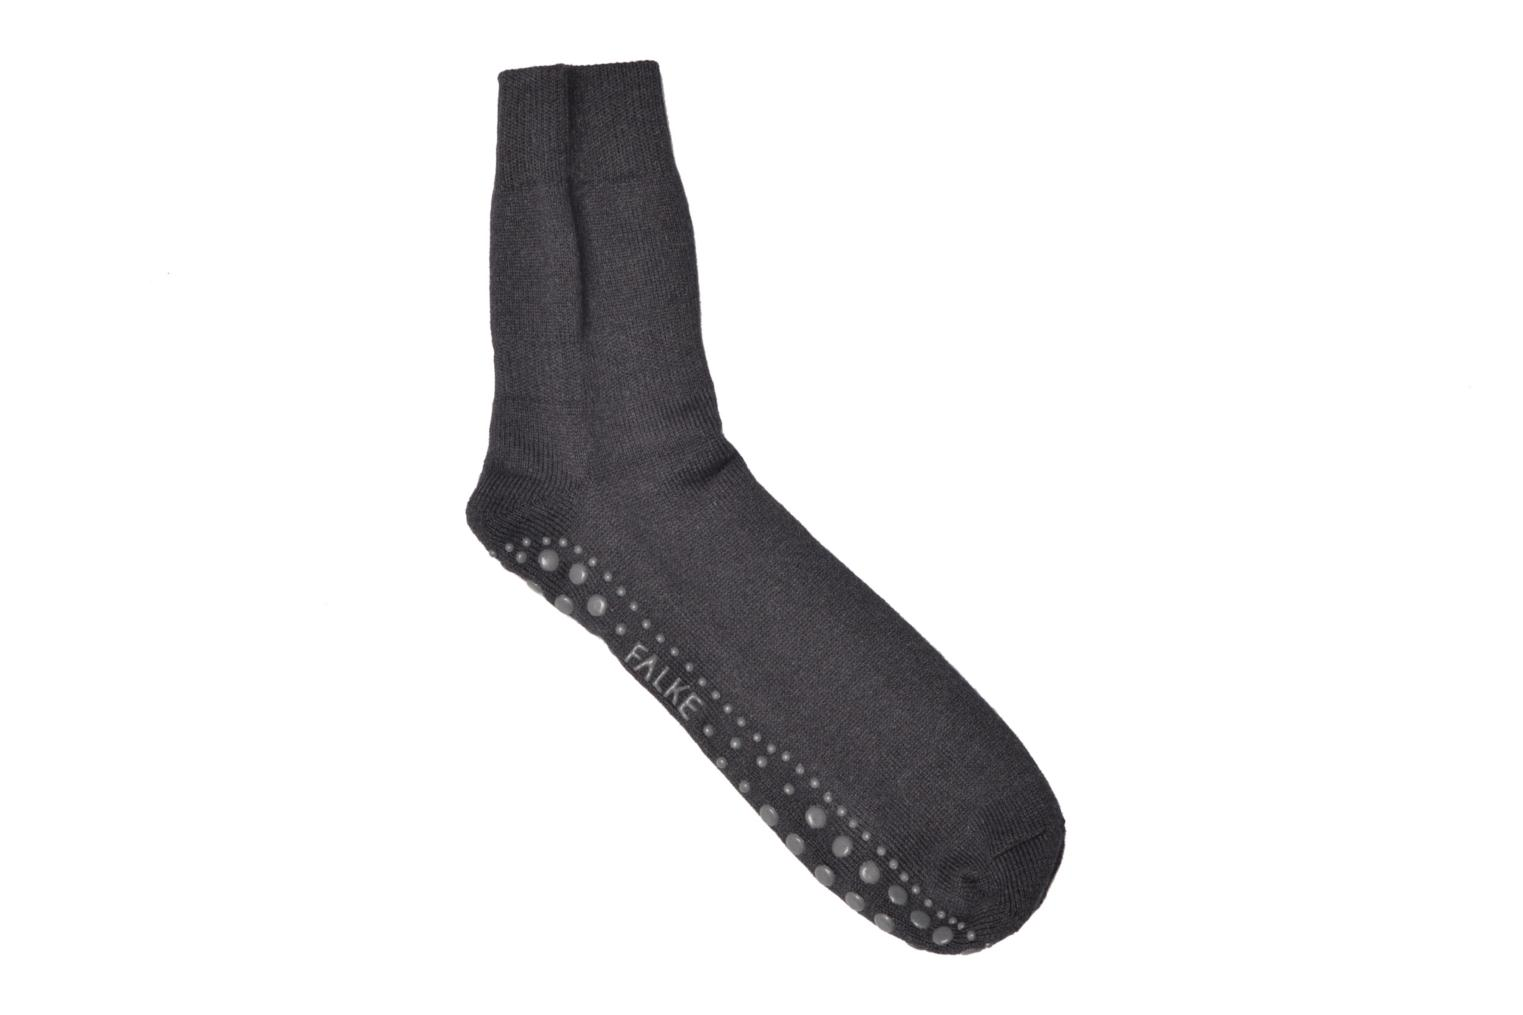 Chaussons-chaussettes Homepads 3180